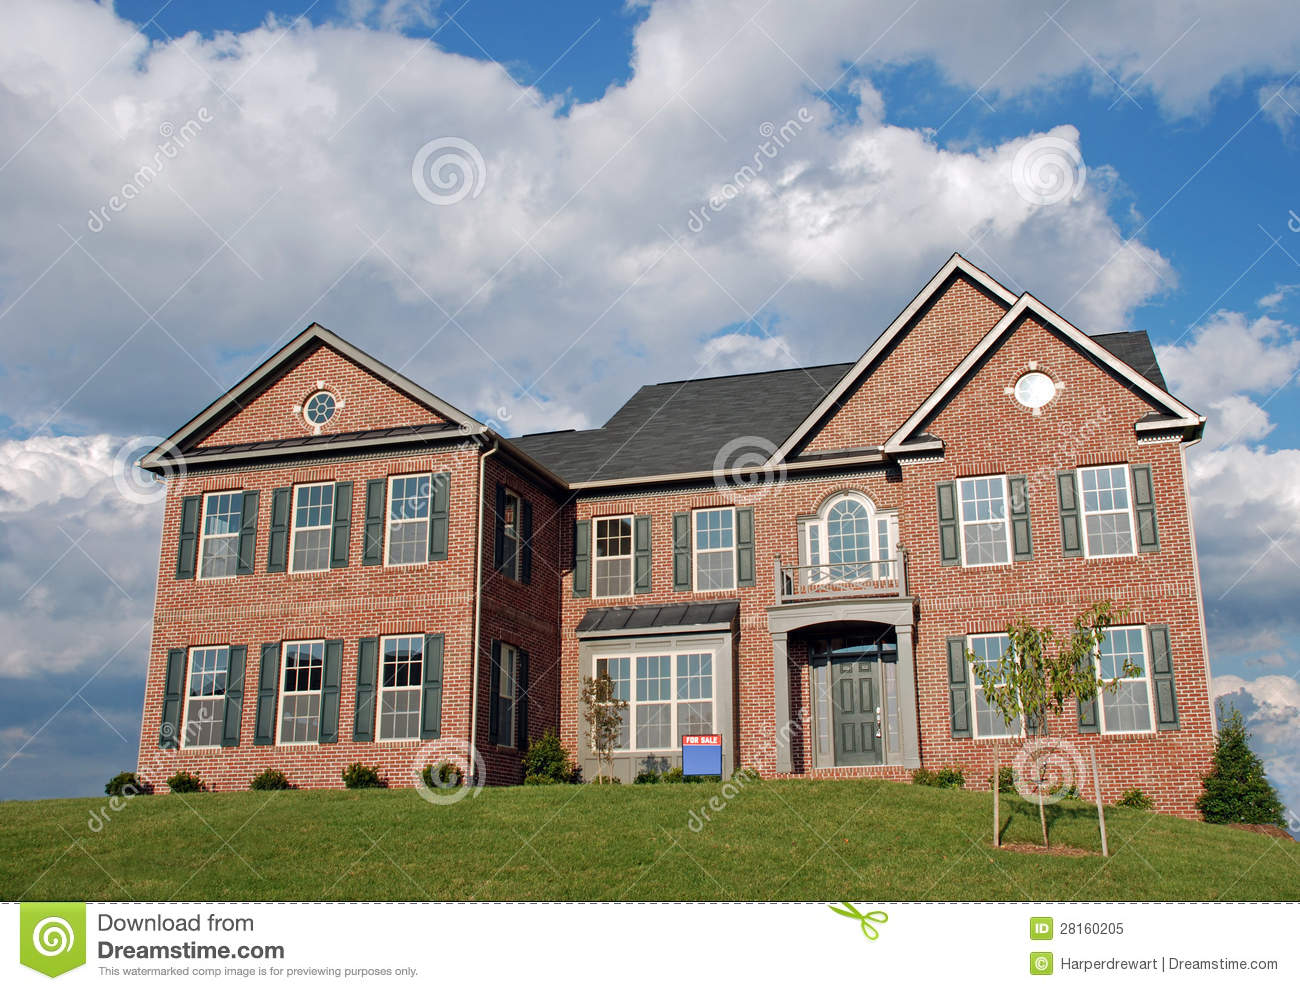 Luxury home royalty free stock photo image 28160205 for Free luxury home images